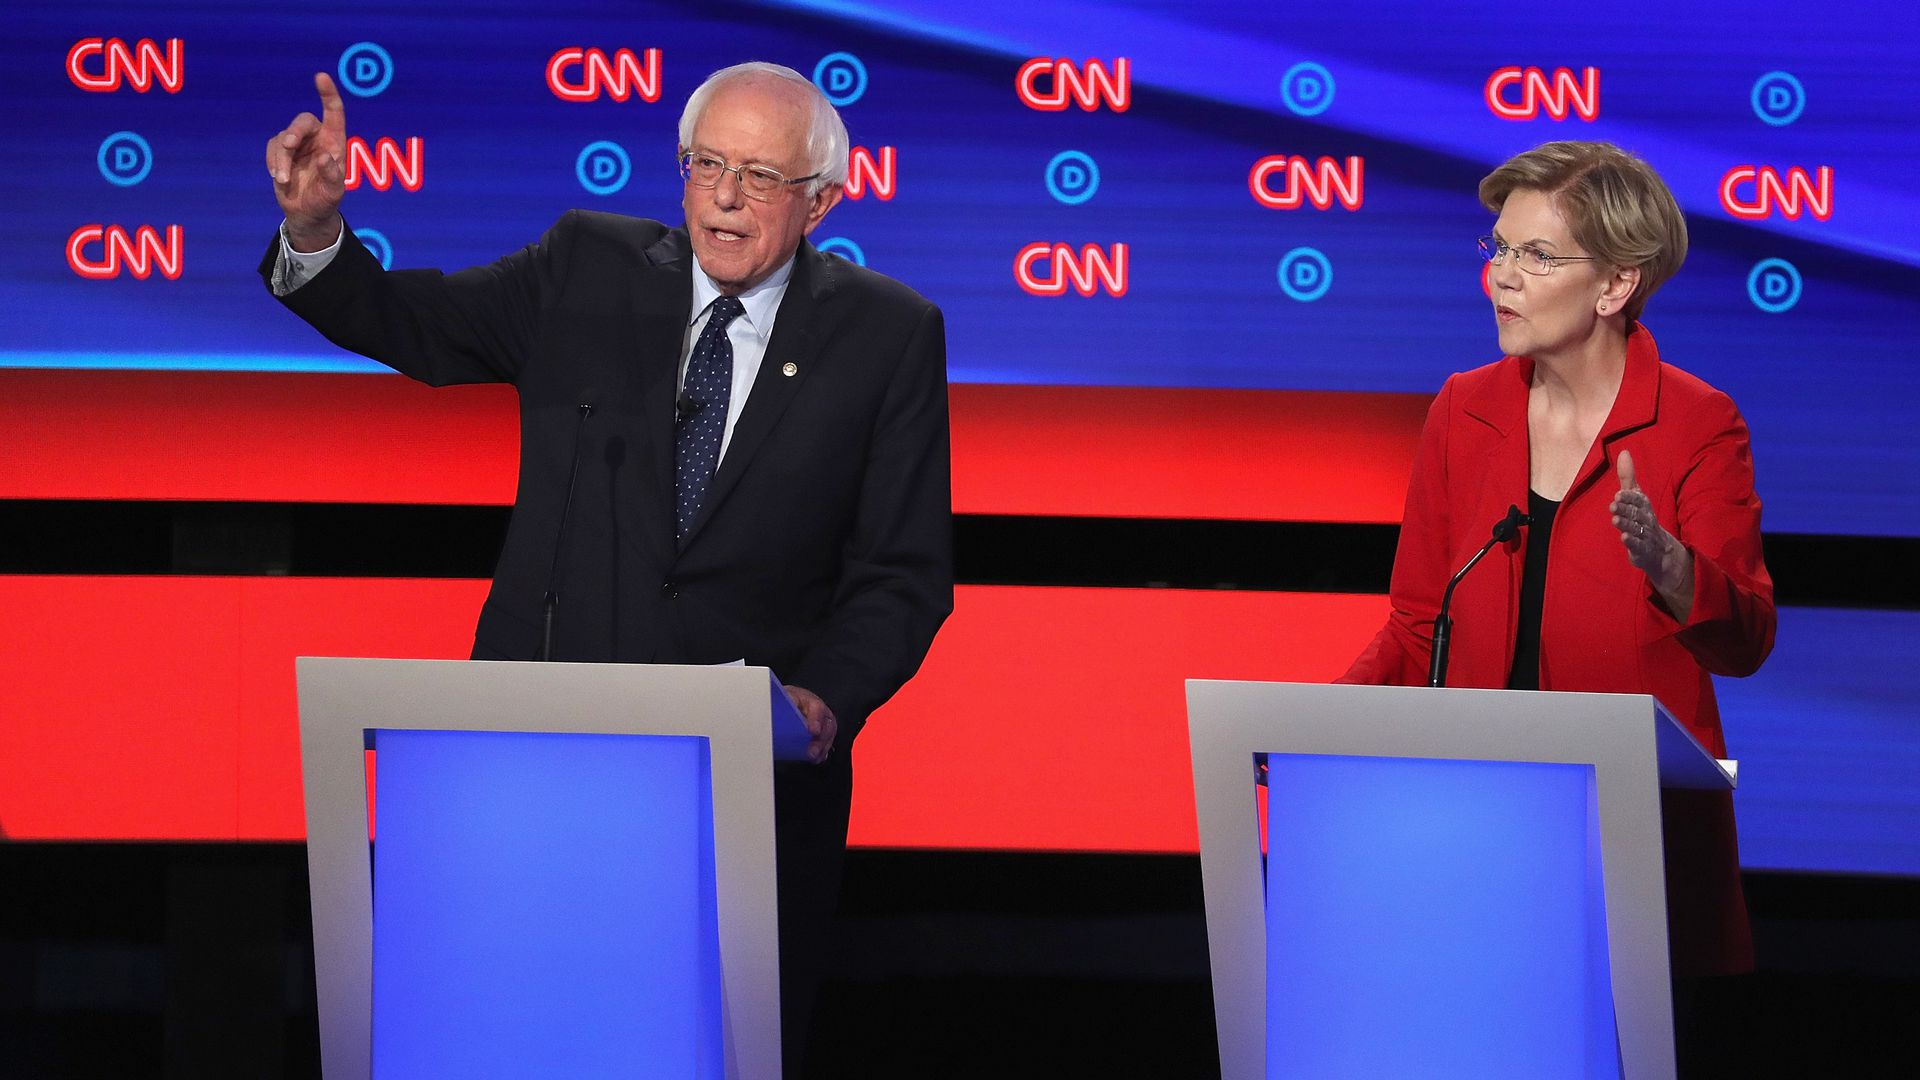 CNN, NYT to co-host 4th Democratic debates